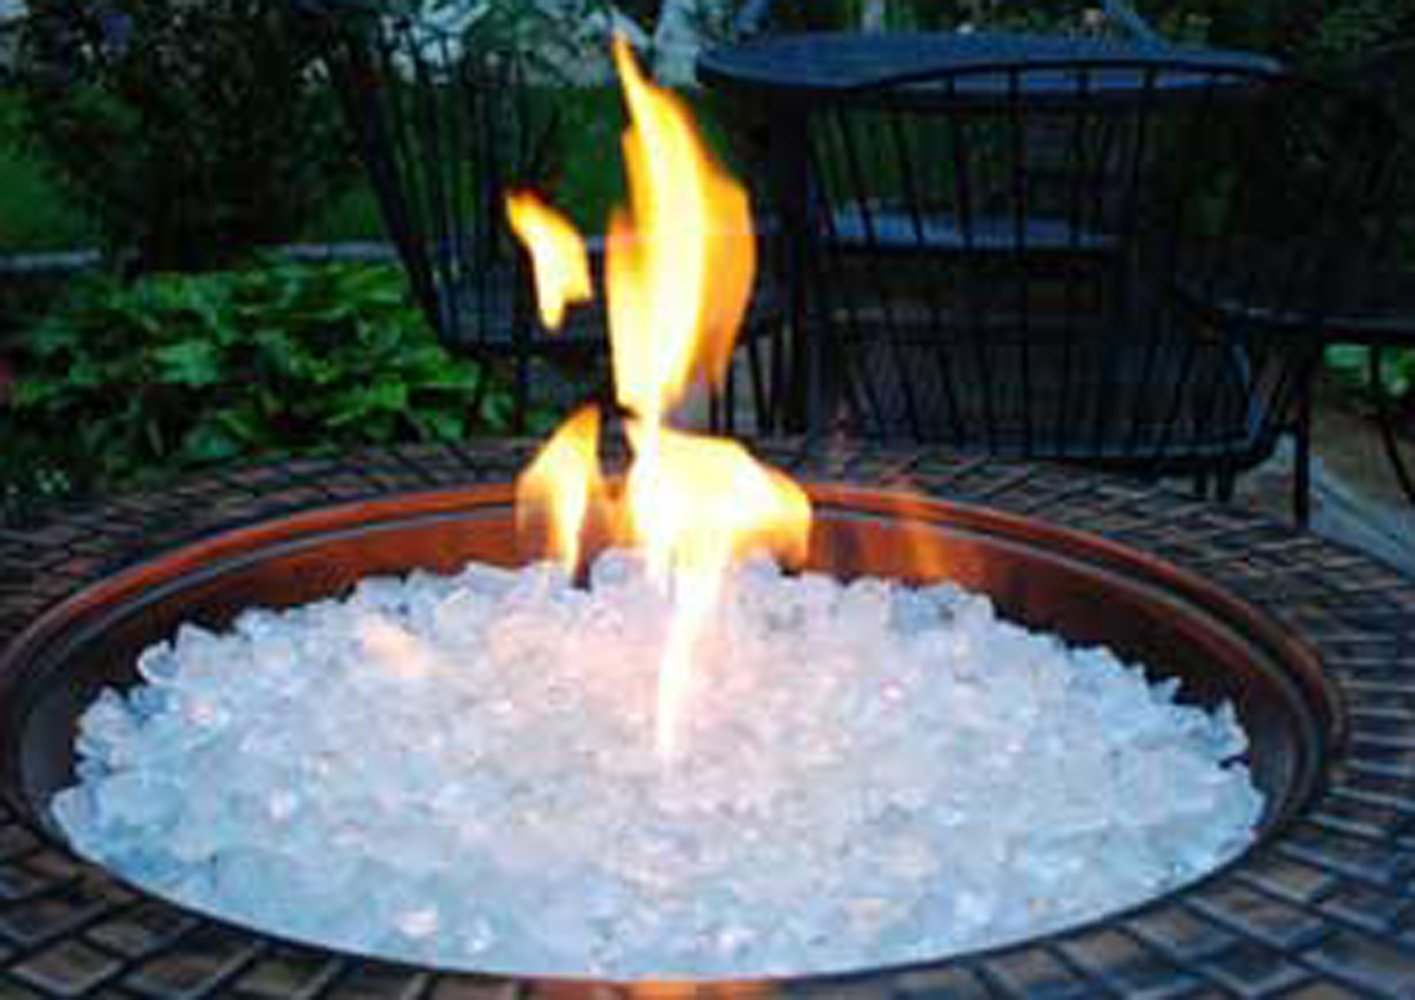 DETAILS. Fire Pit Glass Rocks For Outdoor Propane ... - Fire Pit Glass Rocks For Outdoor Propane Gas Fireplace White Ice